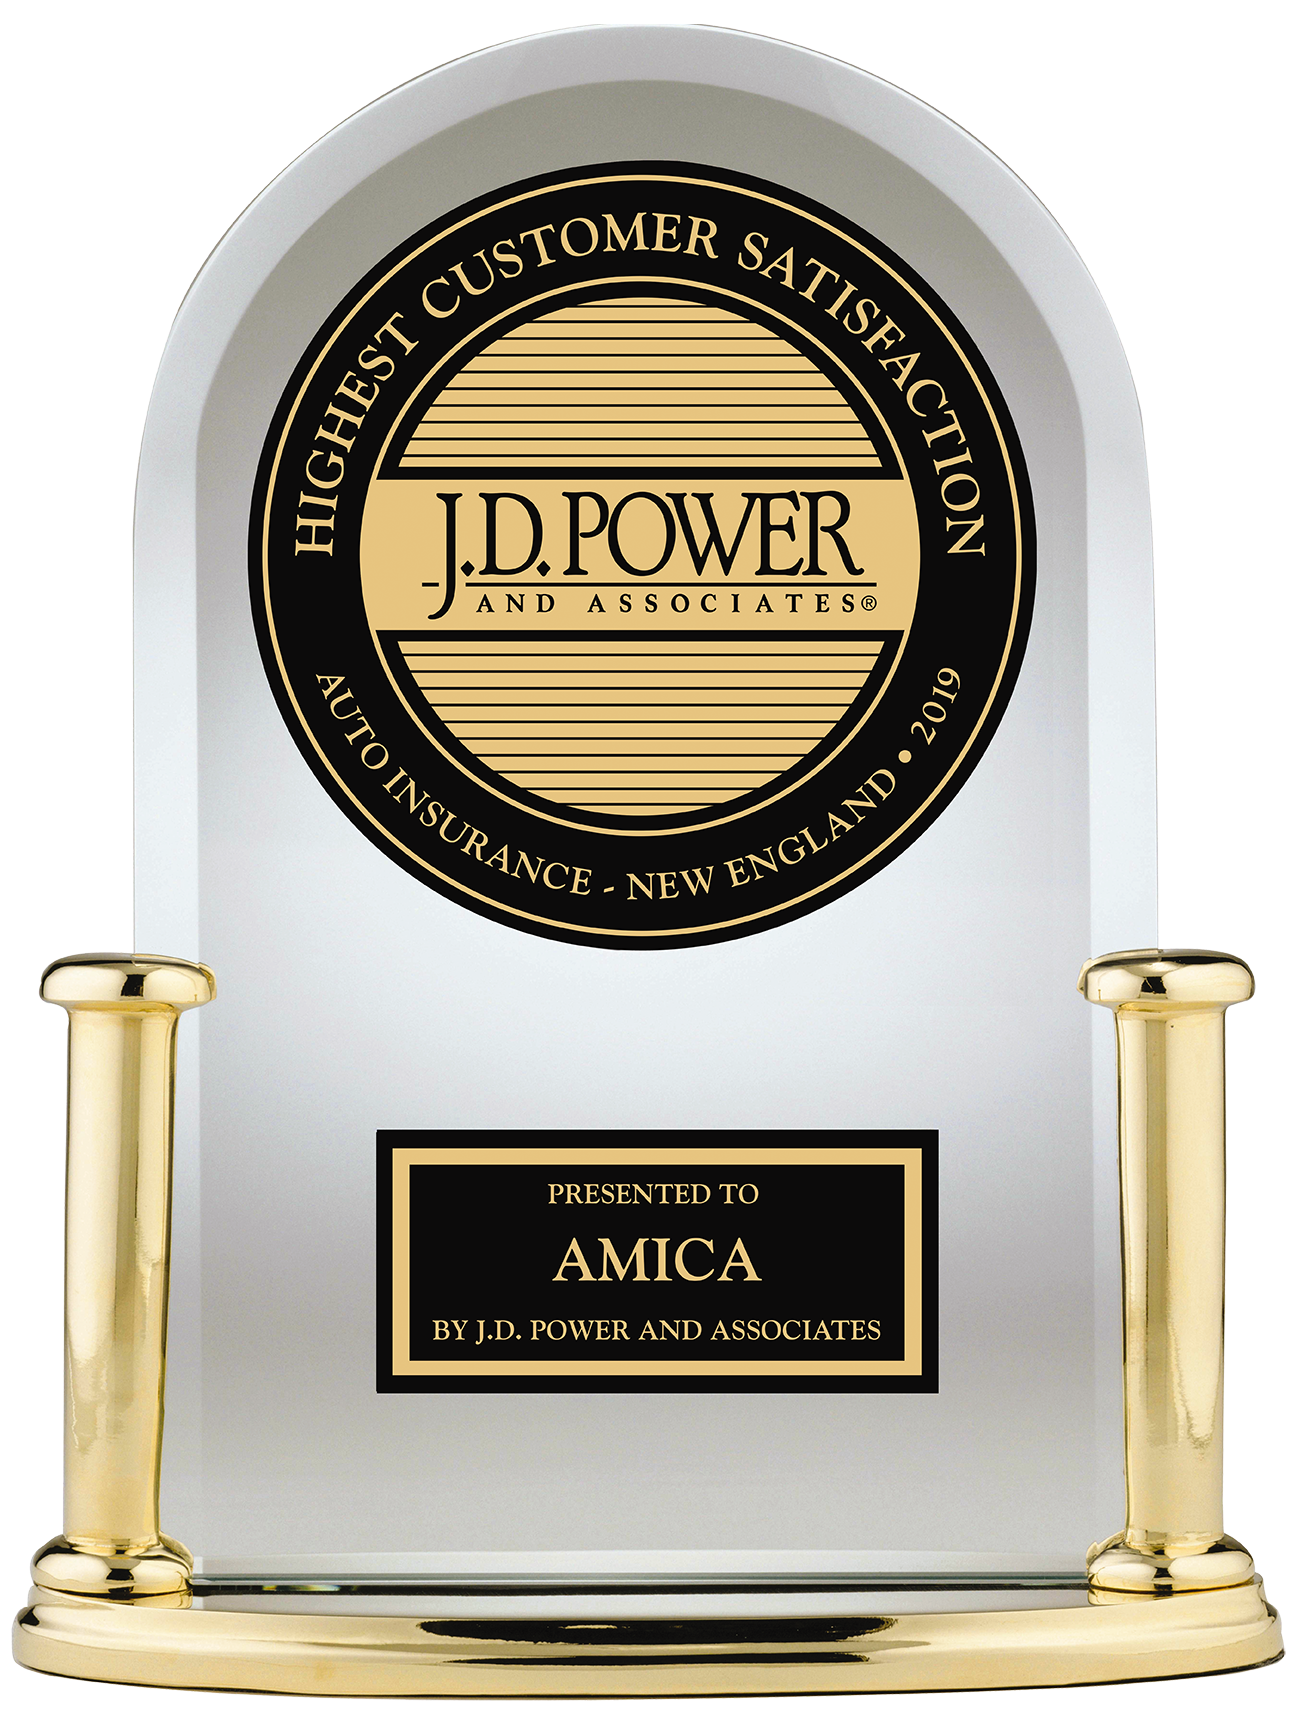 J.D. Power Highest Customer Satisfaction Auto Insurance New England 2019 presented to Amica by J.D. Power and Associates